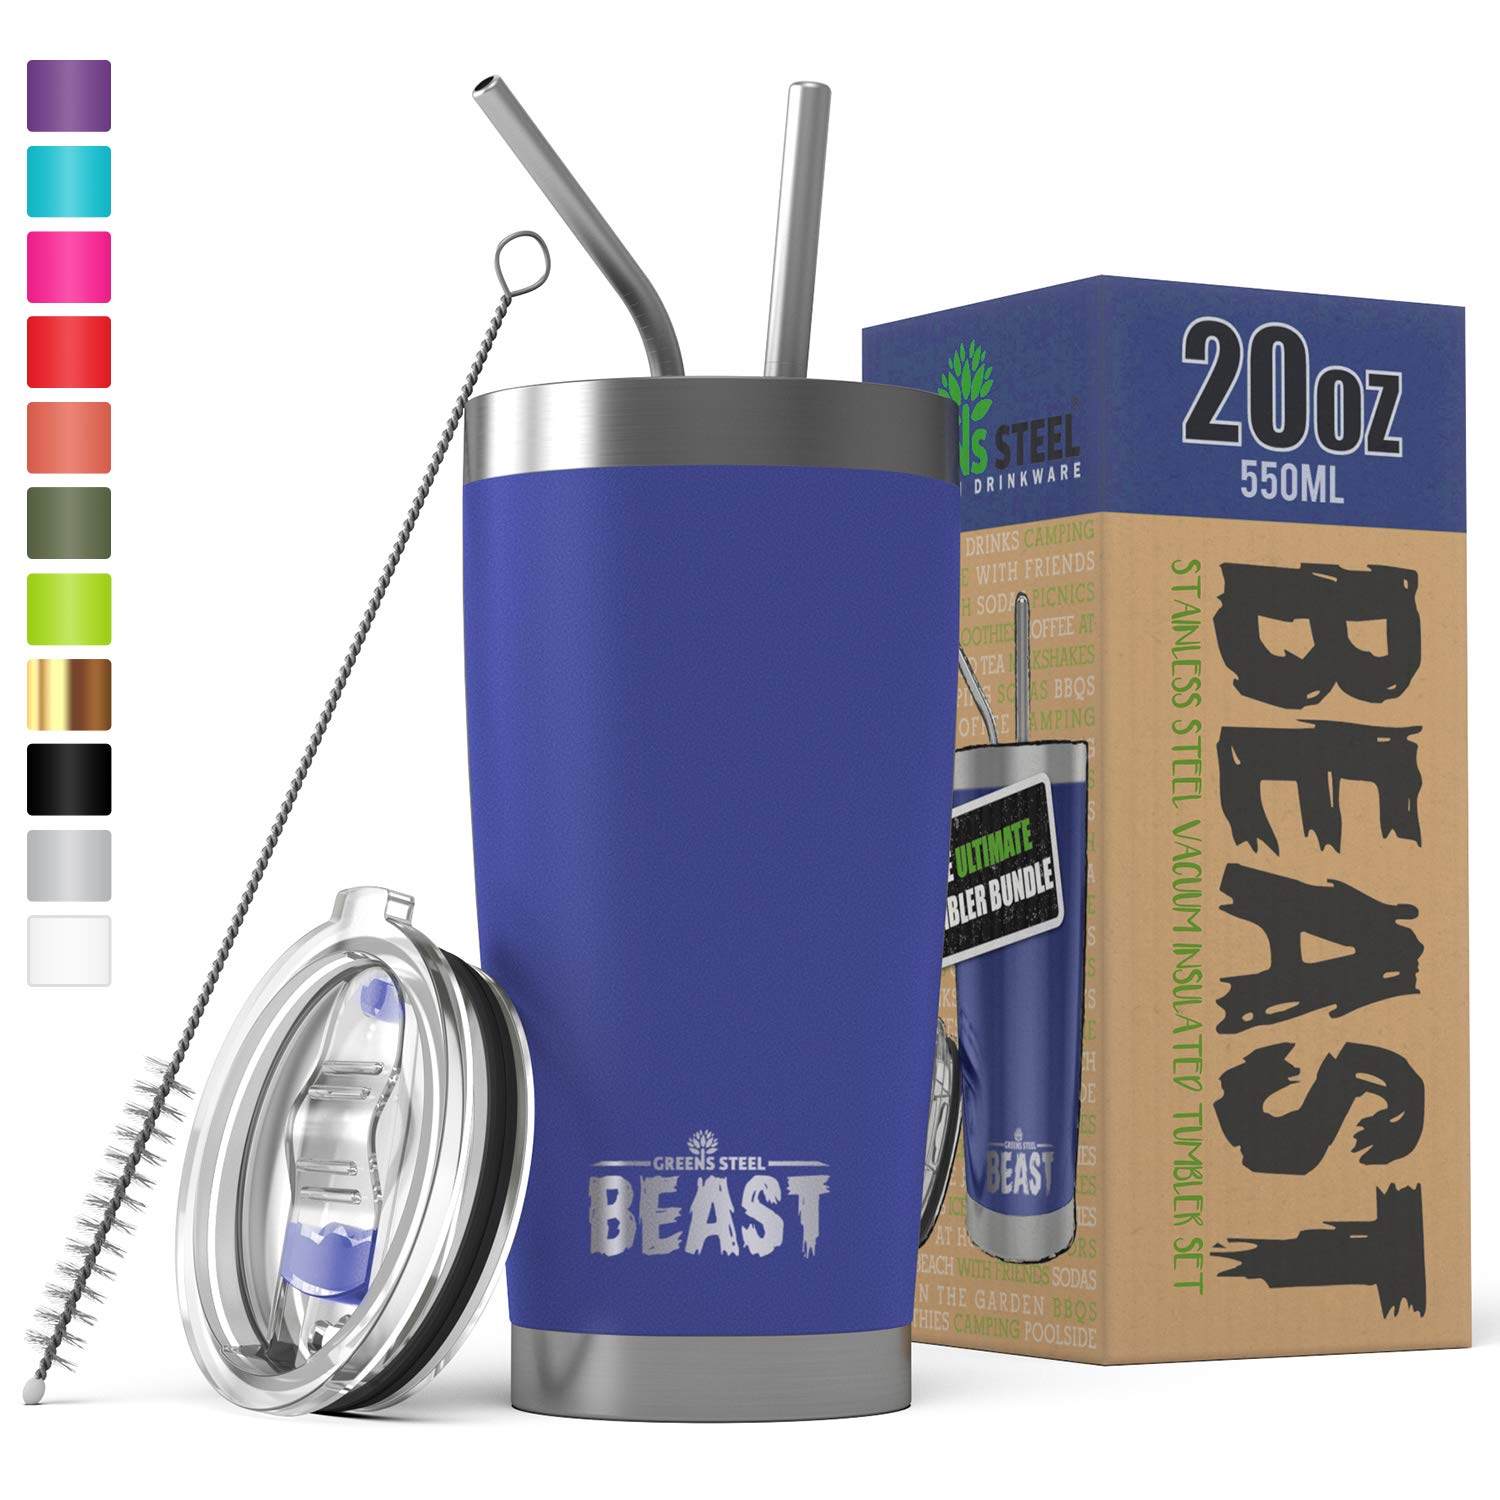 BEAST 20 oz. Royal Blue Tumbler Stainless Steel Vacuum Insulated Coffee Cup Double Wall Travel Flask (20 oz, Royal Blue)